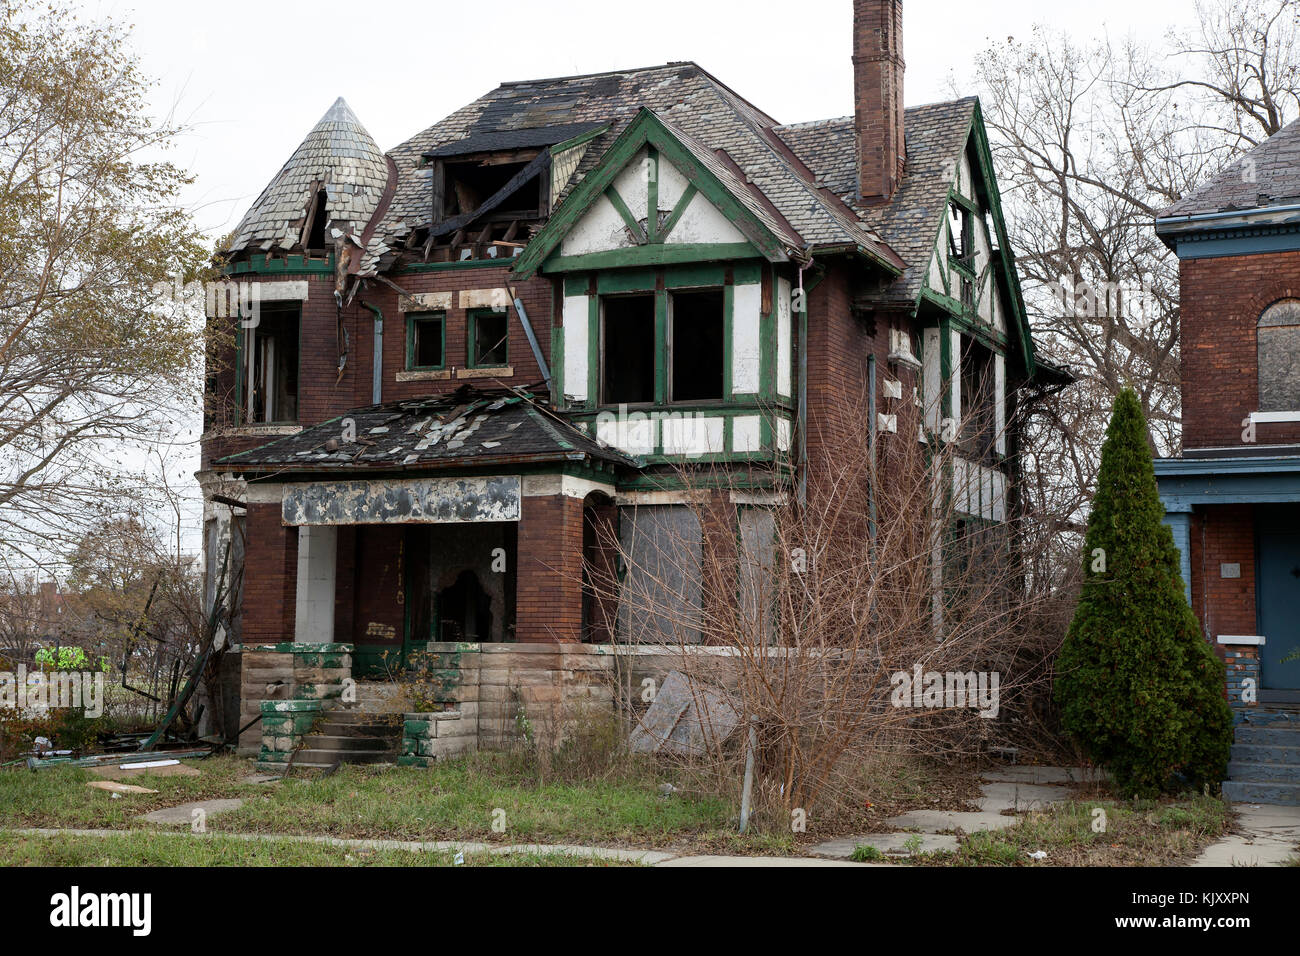 Urban Decay Detroit Michigan Usa By James D Coppinger Dembinsky Stock Photo Alamy